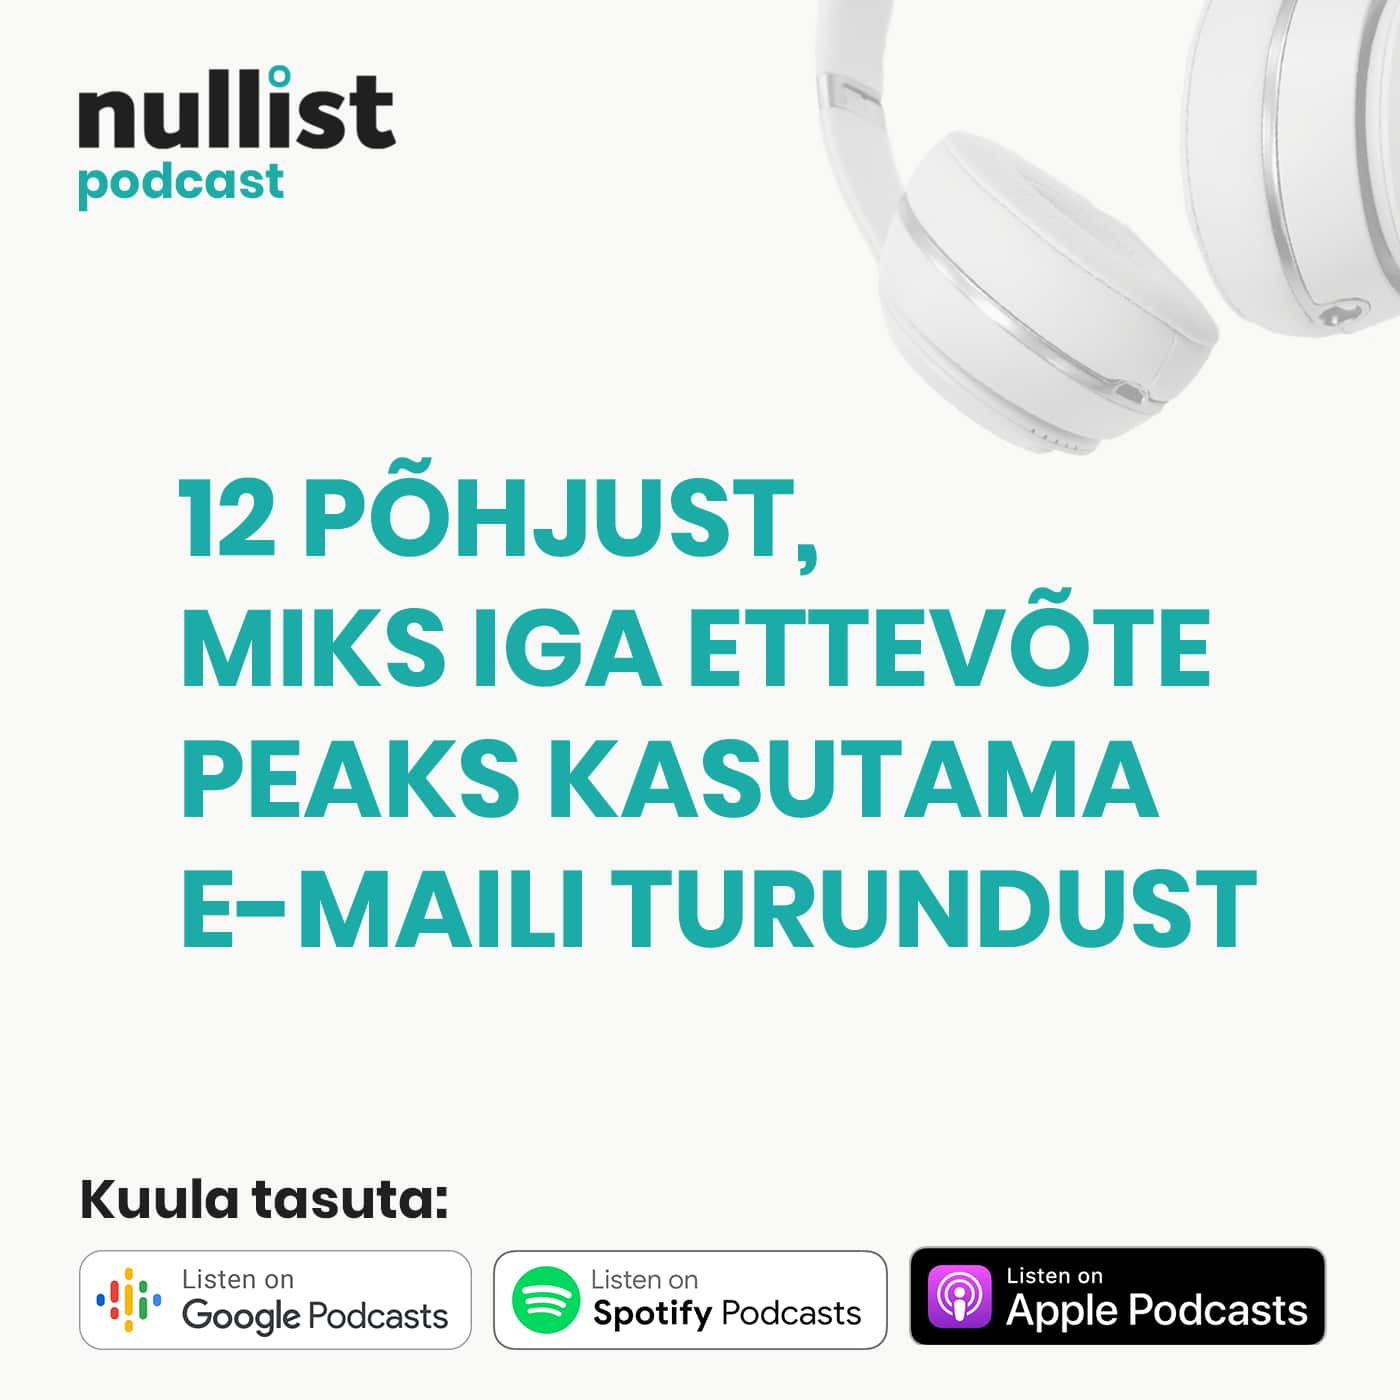 nullist podcast cover